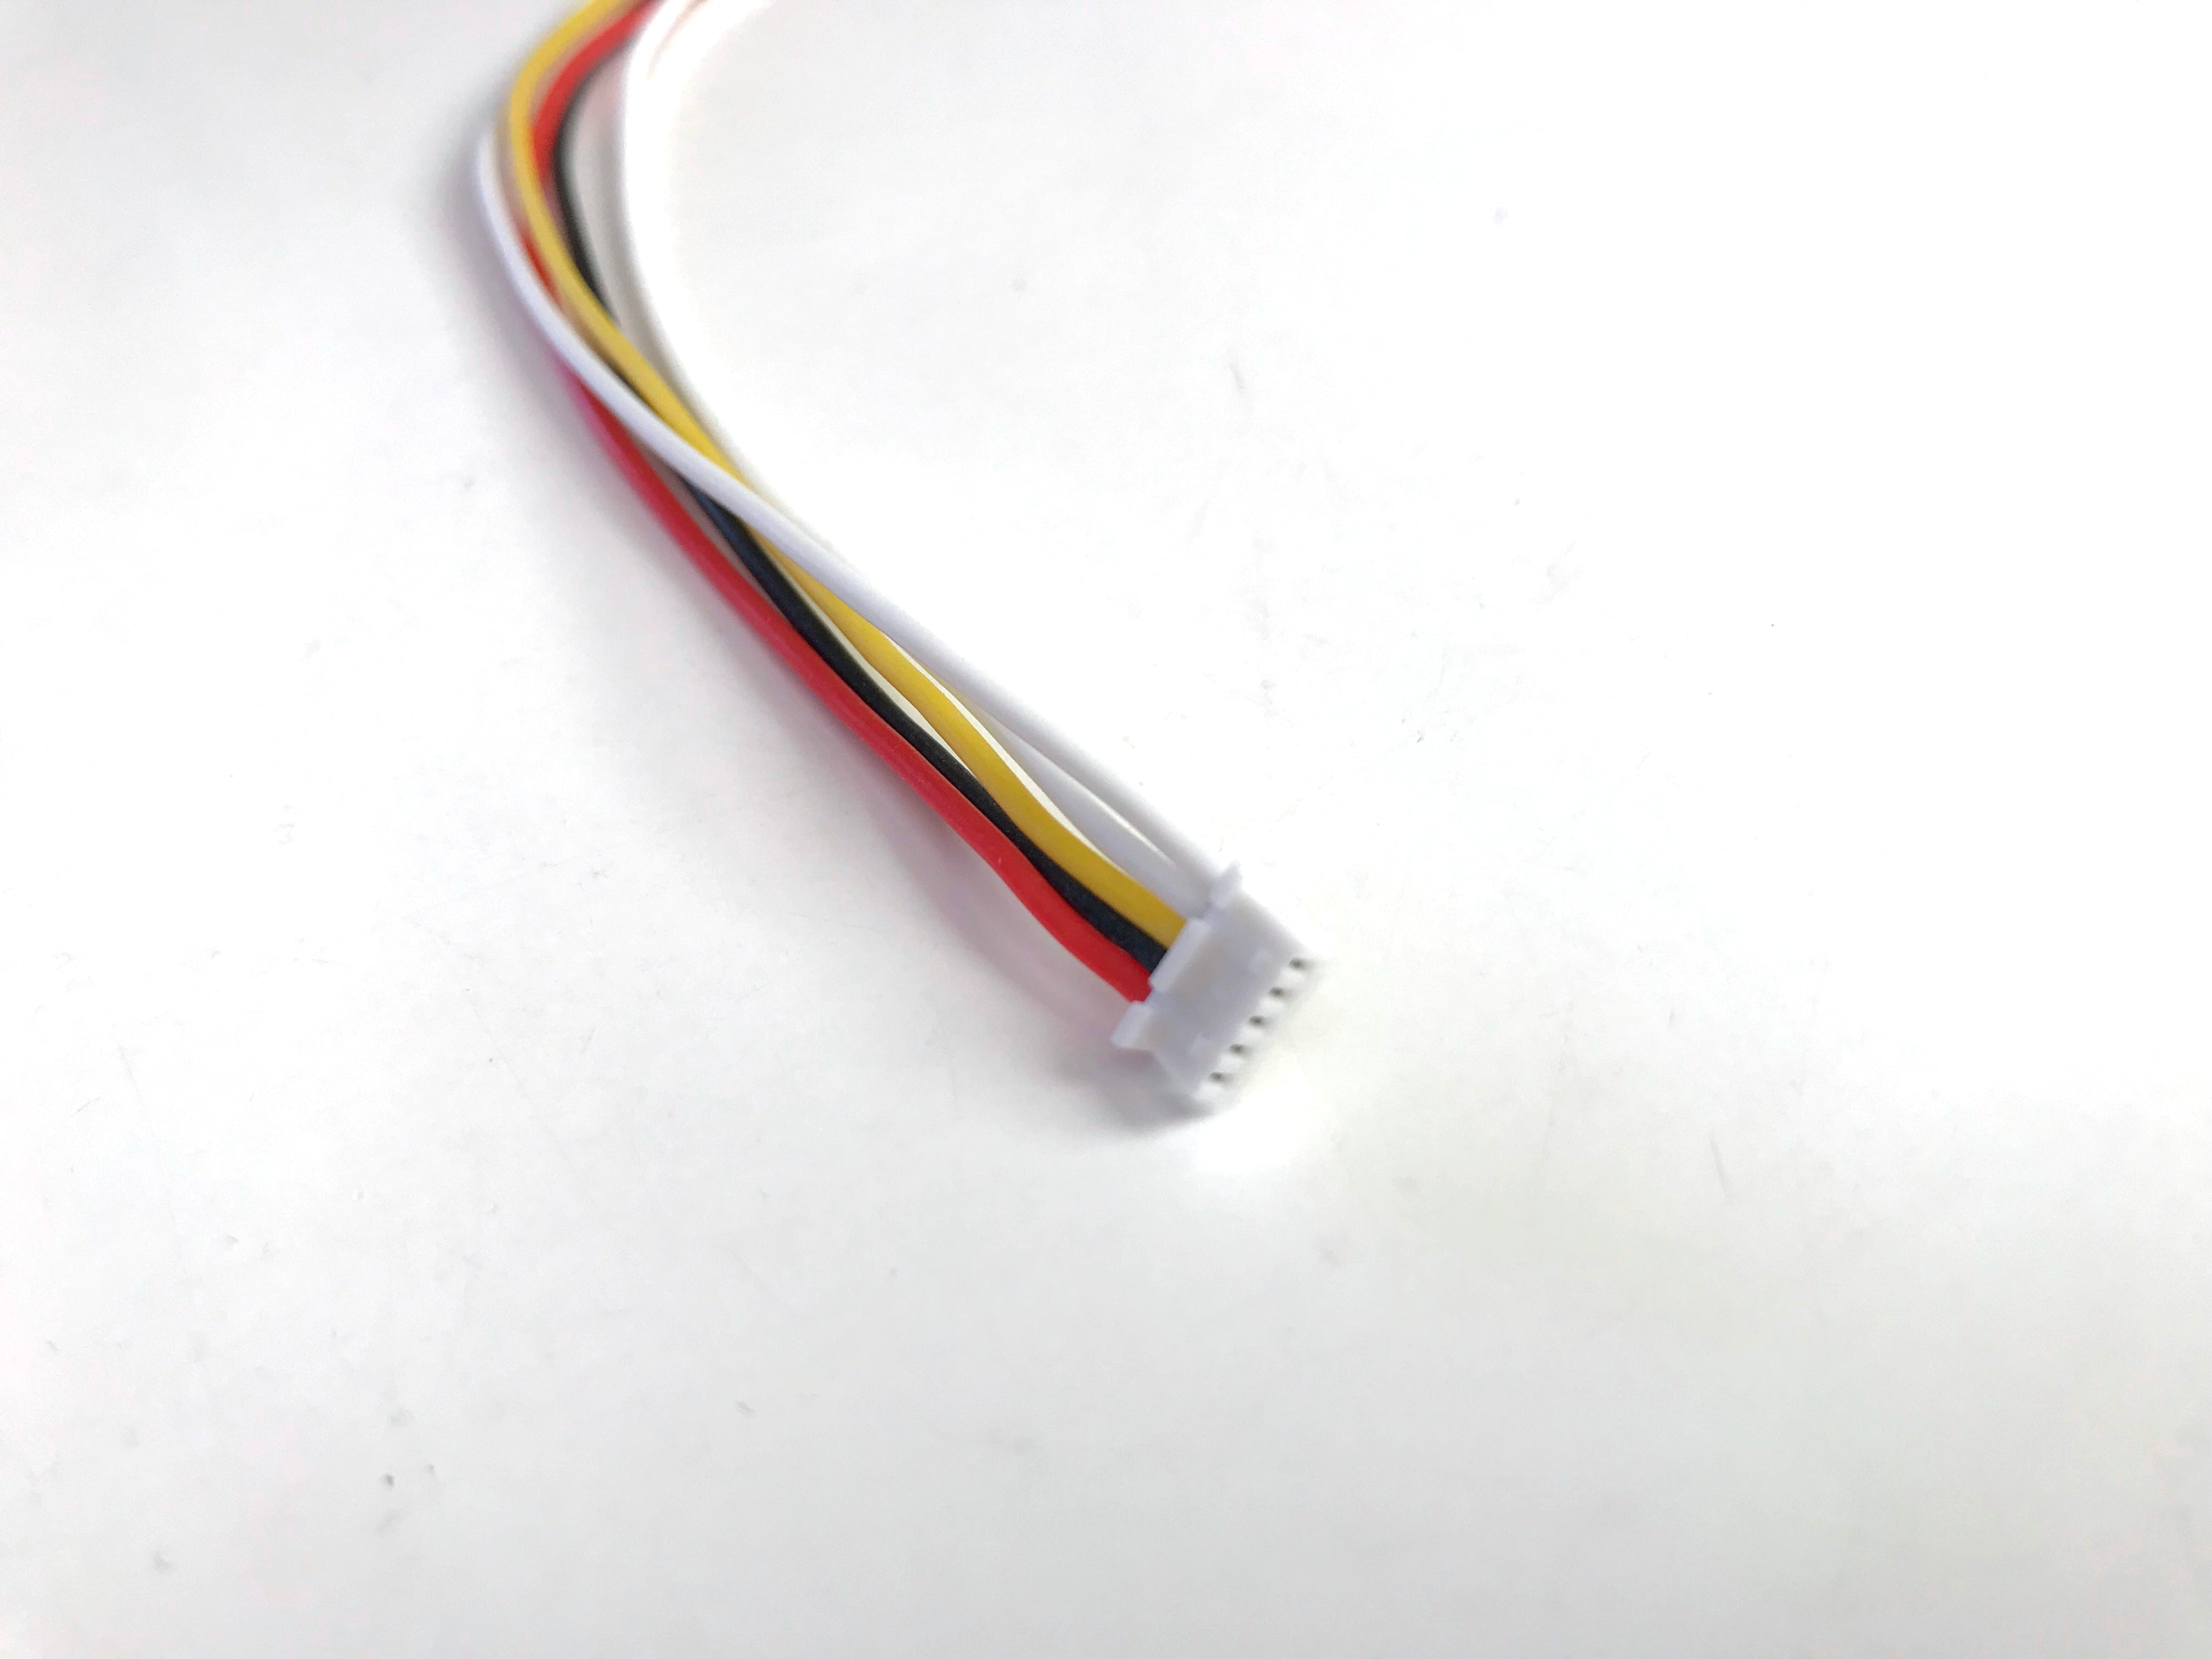 micro jst plug 5 pin, 1 25mm with silicon wire harness set (5p) 5 Pin Wire Harness Kia Home Link